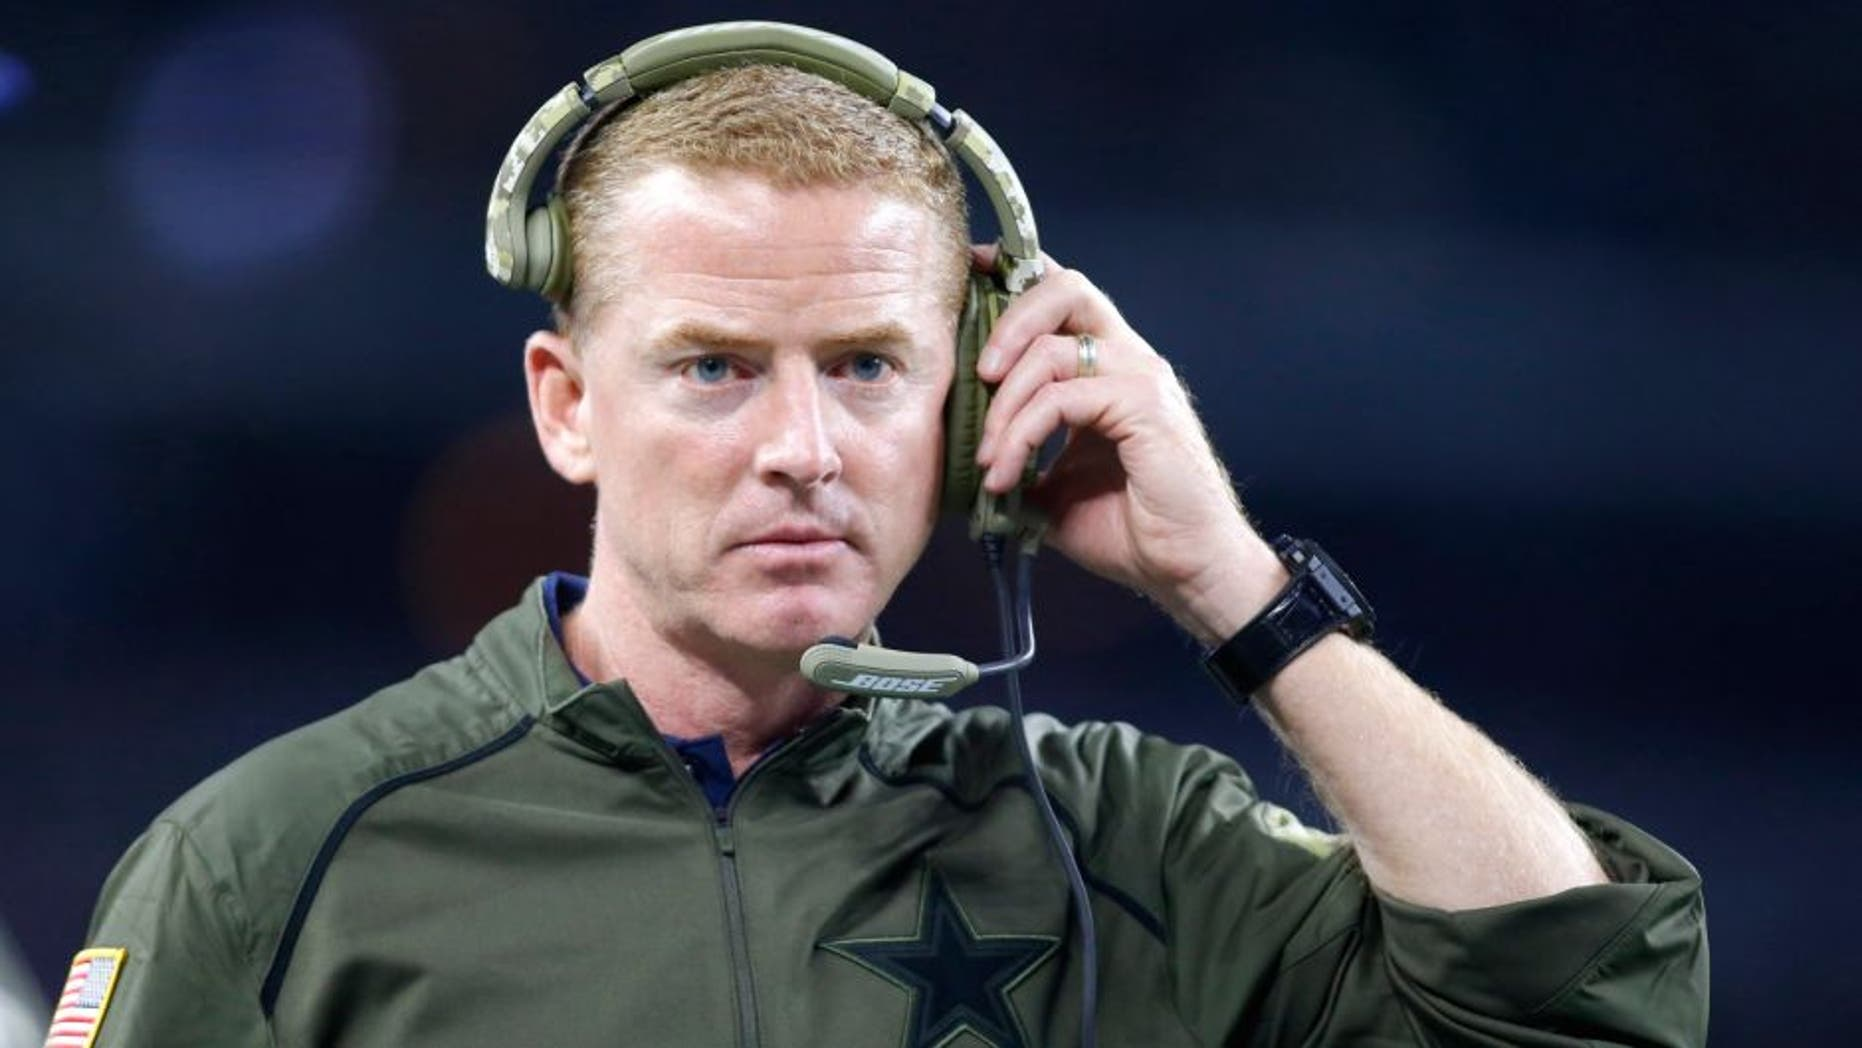 Nov 8, 2015; Arlington, TX, USA; Dallas Cowboys head coach Jason Garrett on the sidelines during the game against the Philadelphia Eagles at AT&T Stadium. Philadelphia won 33-27 in overtime. Mandatory Credit: Tim Heitman-USA TODAY Sports